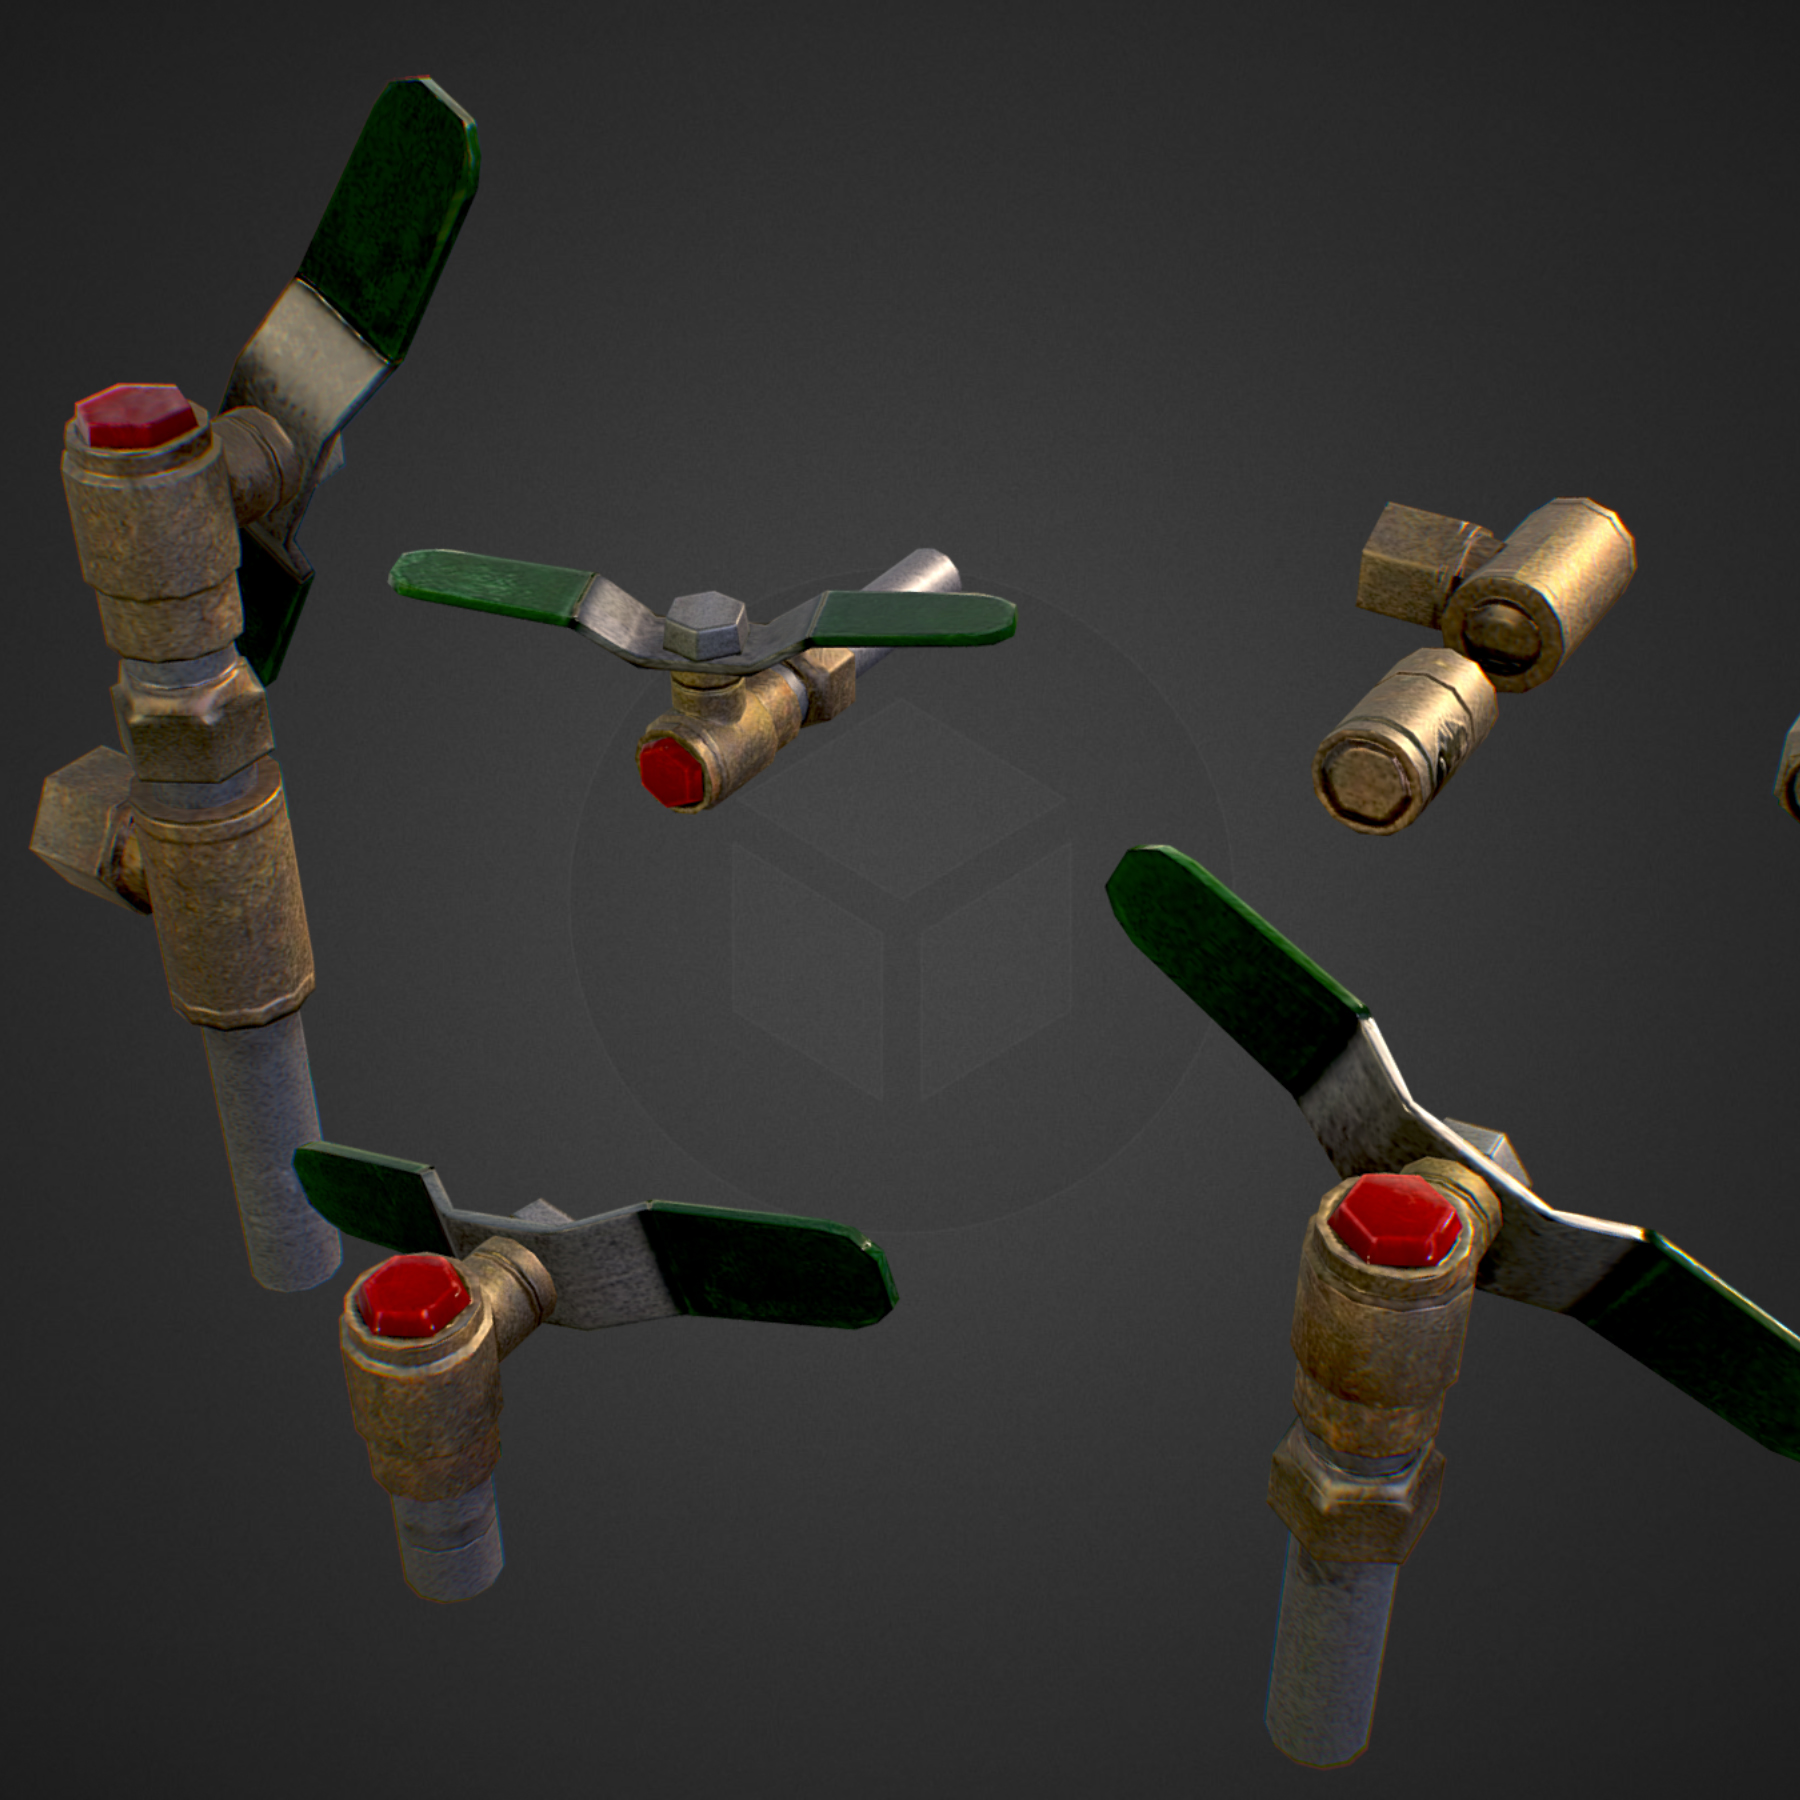 low poly game backflow water pipe constructor 3d model max  fbx ma mb tga targa icb vda vst pix obj 272479